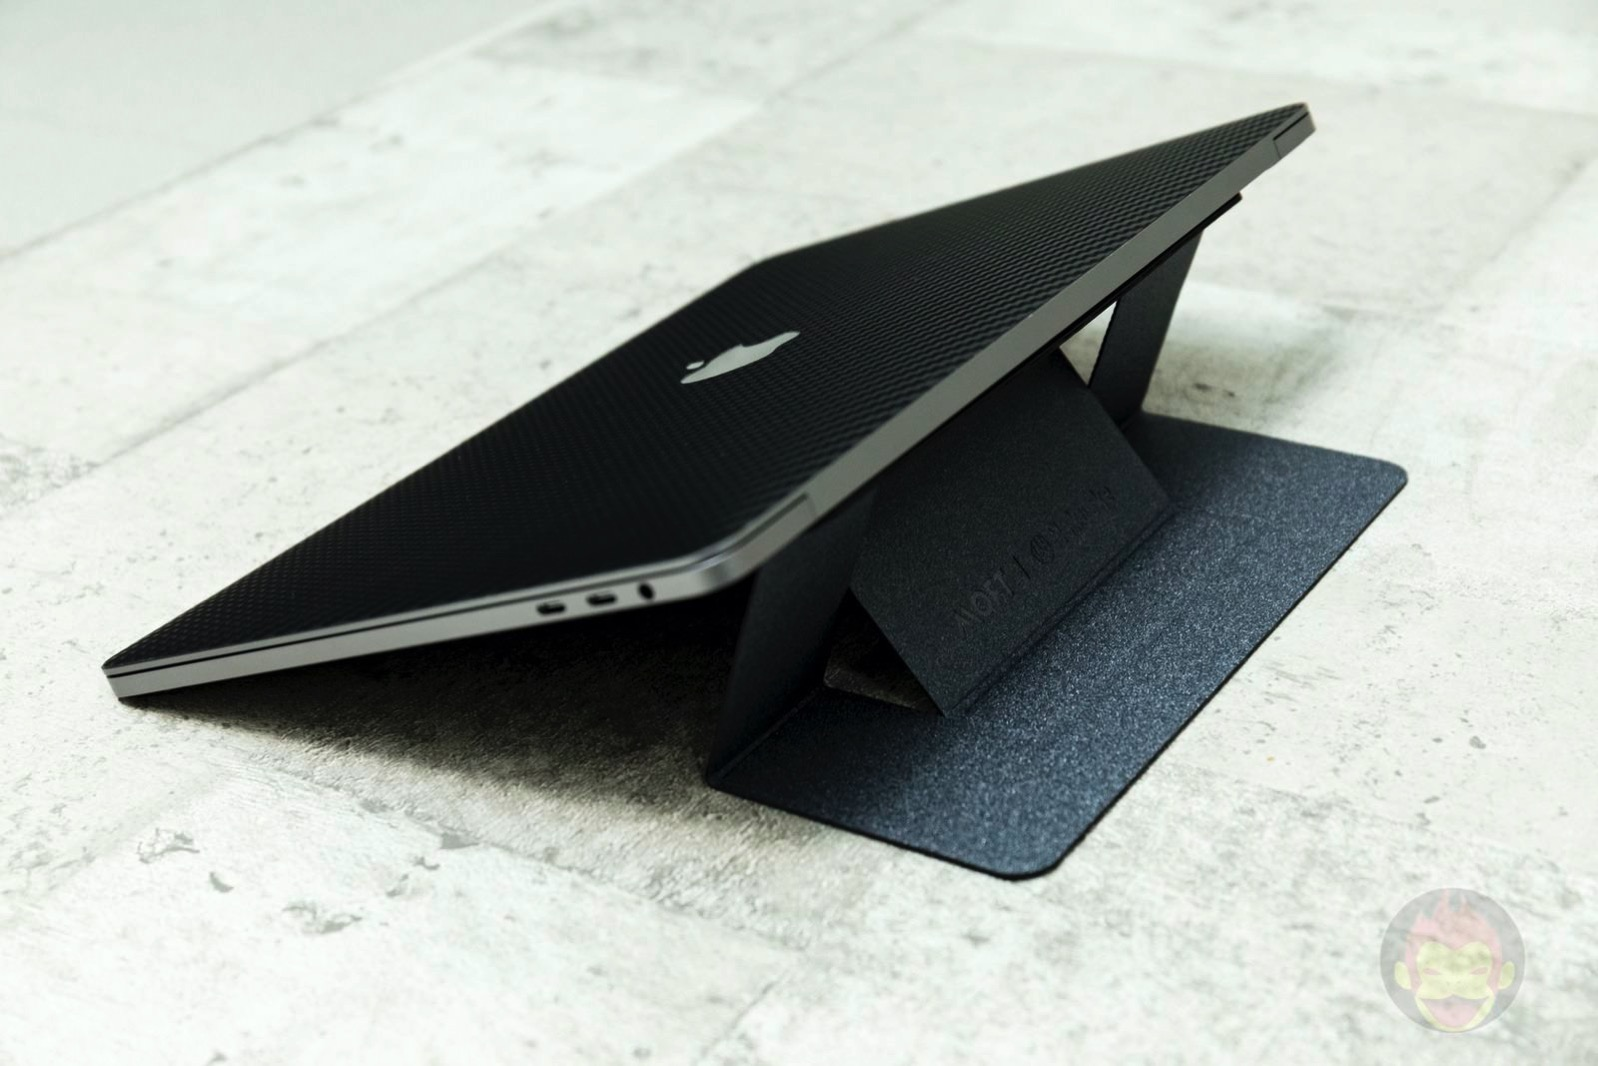 MOFT-Laptop-Stand-review-07.jpg